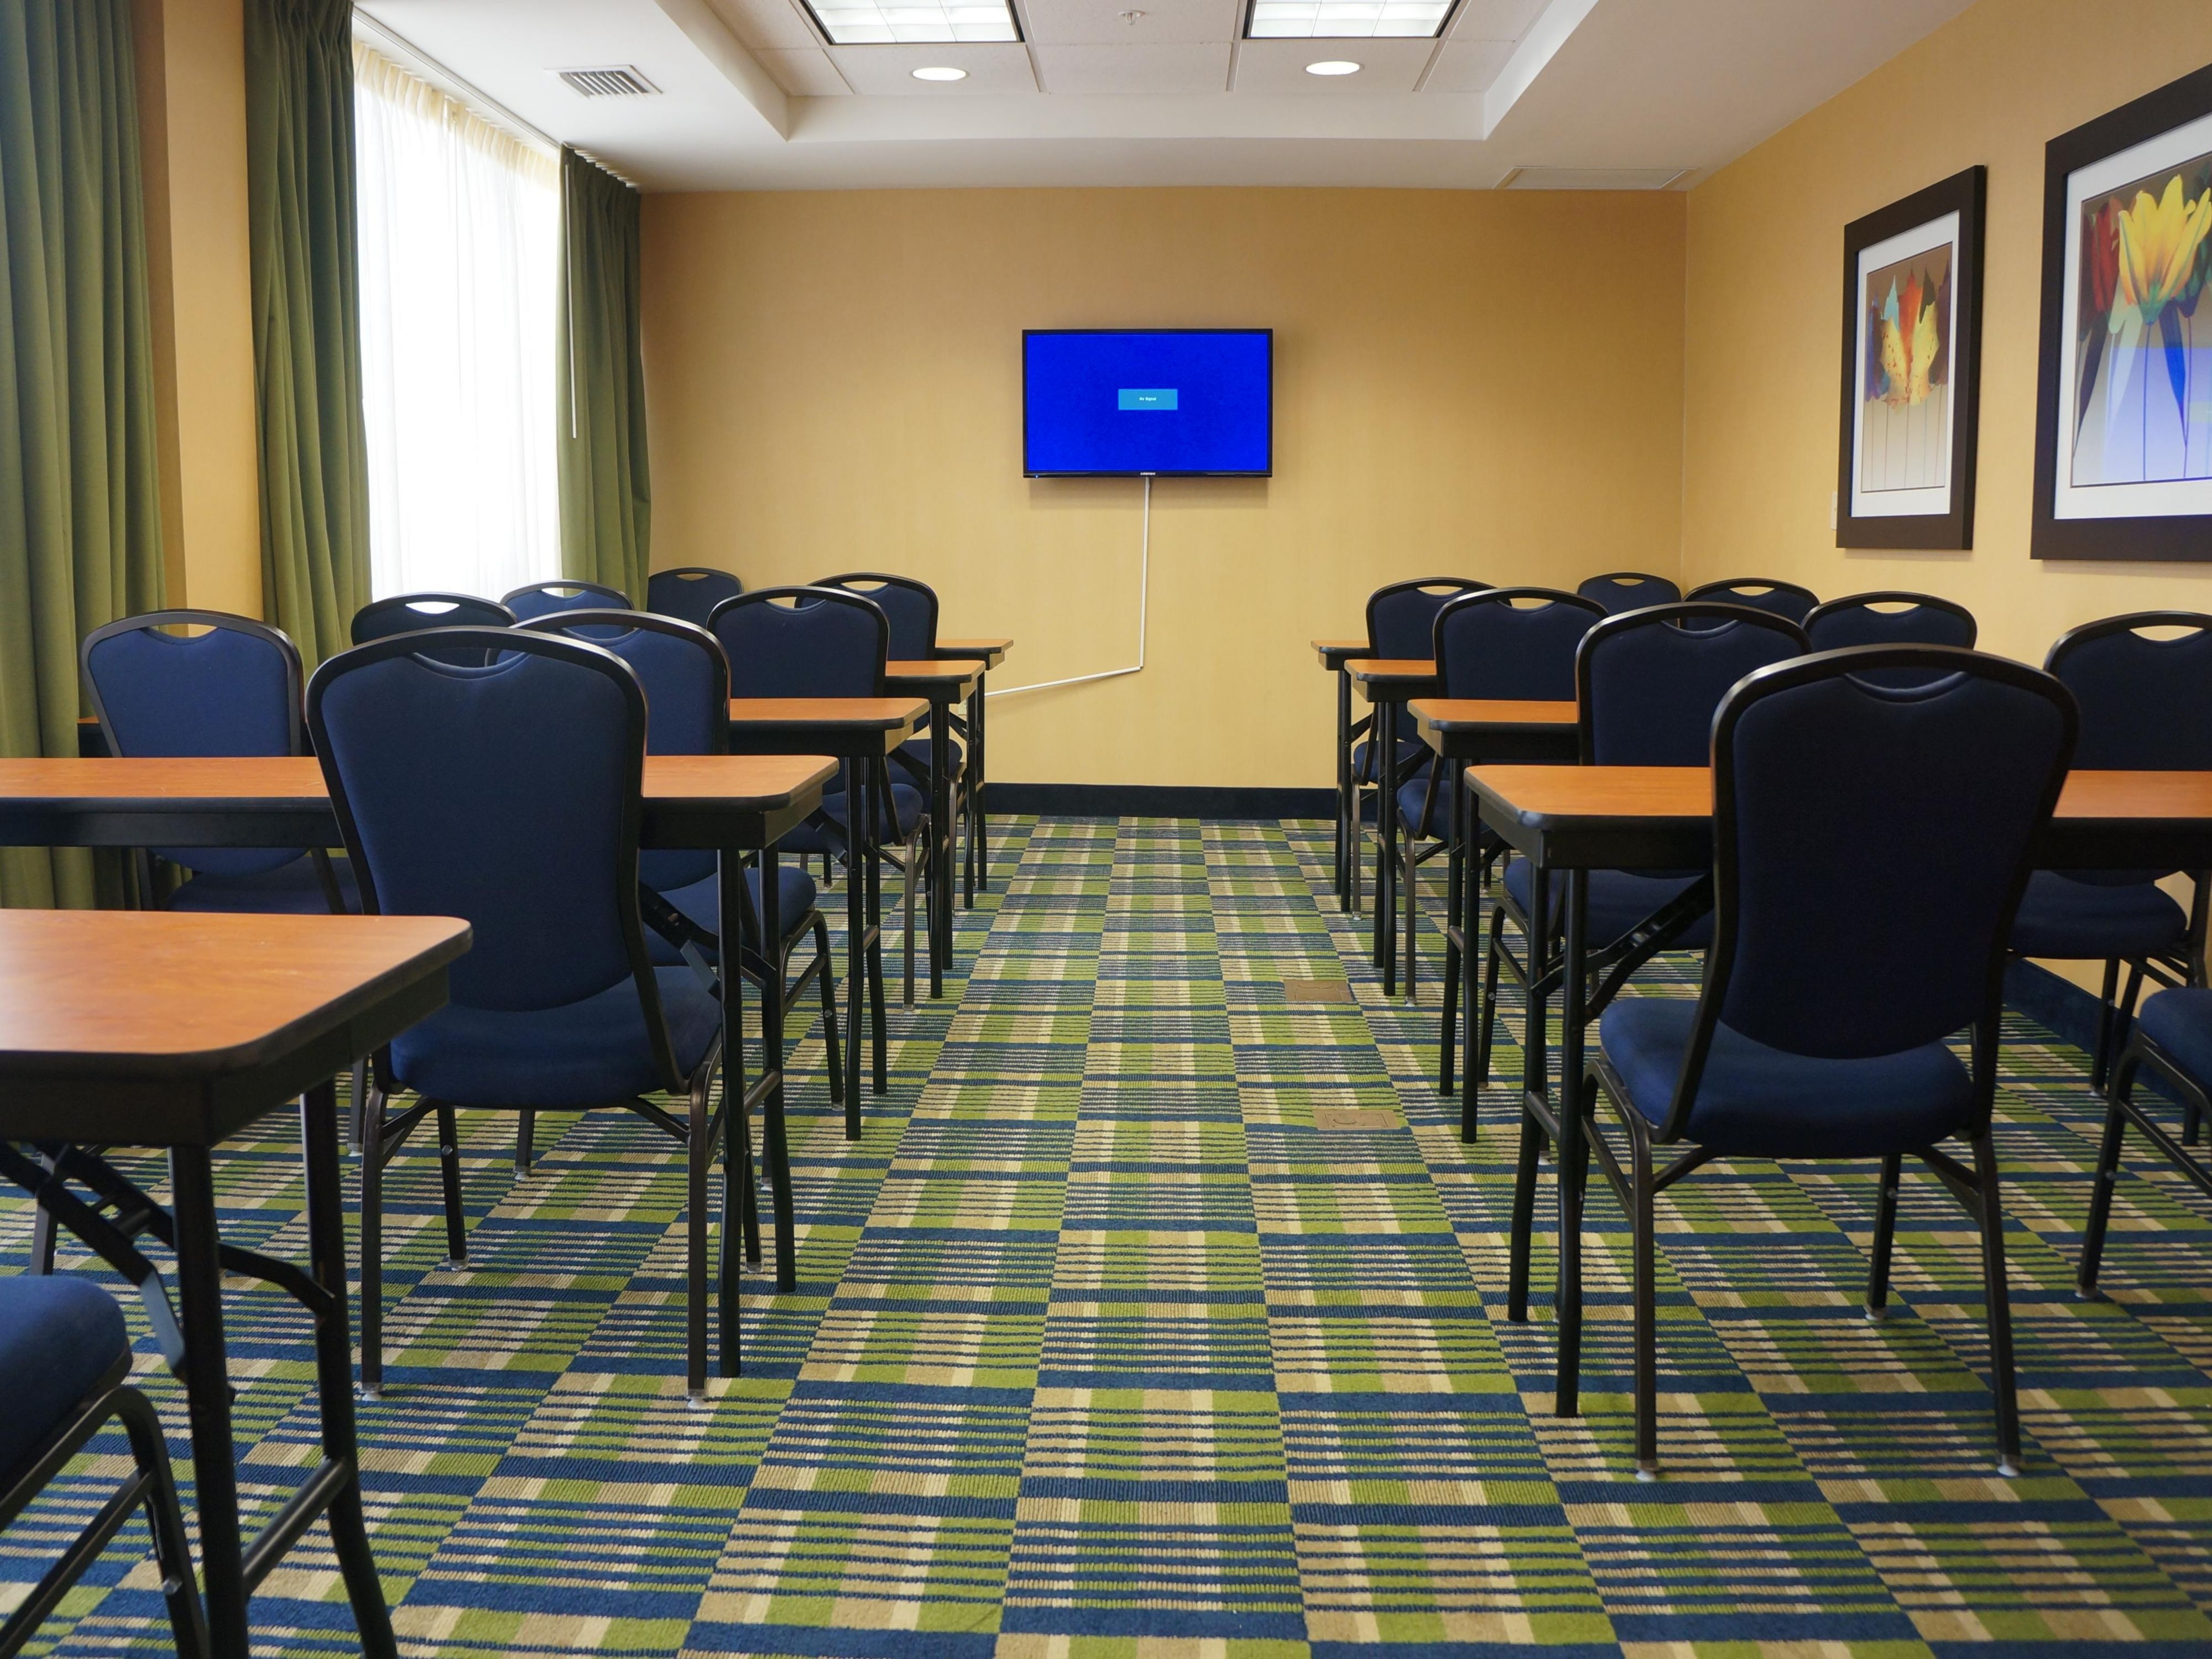 Class room setting or more for your next meeting with ocean view